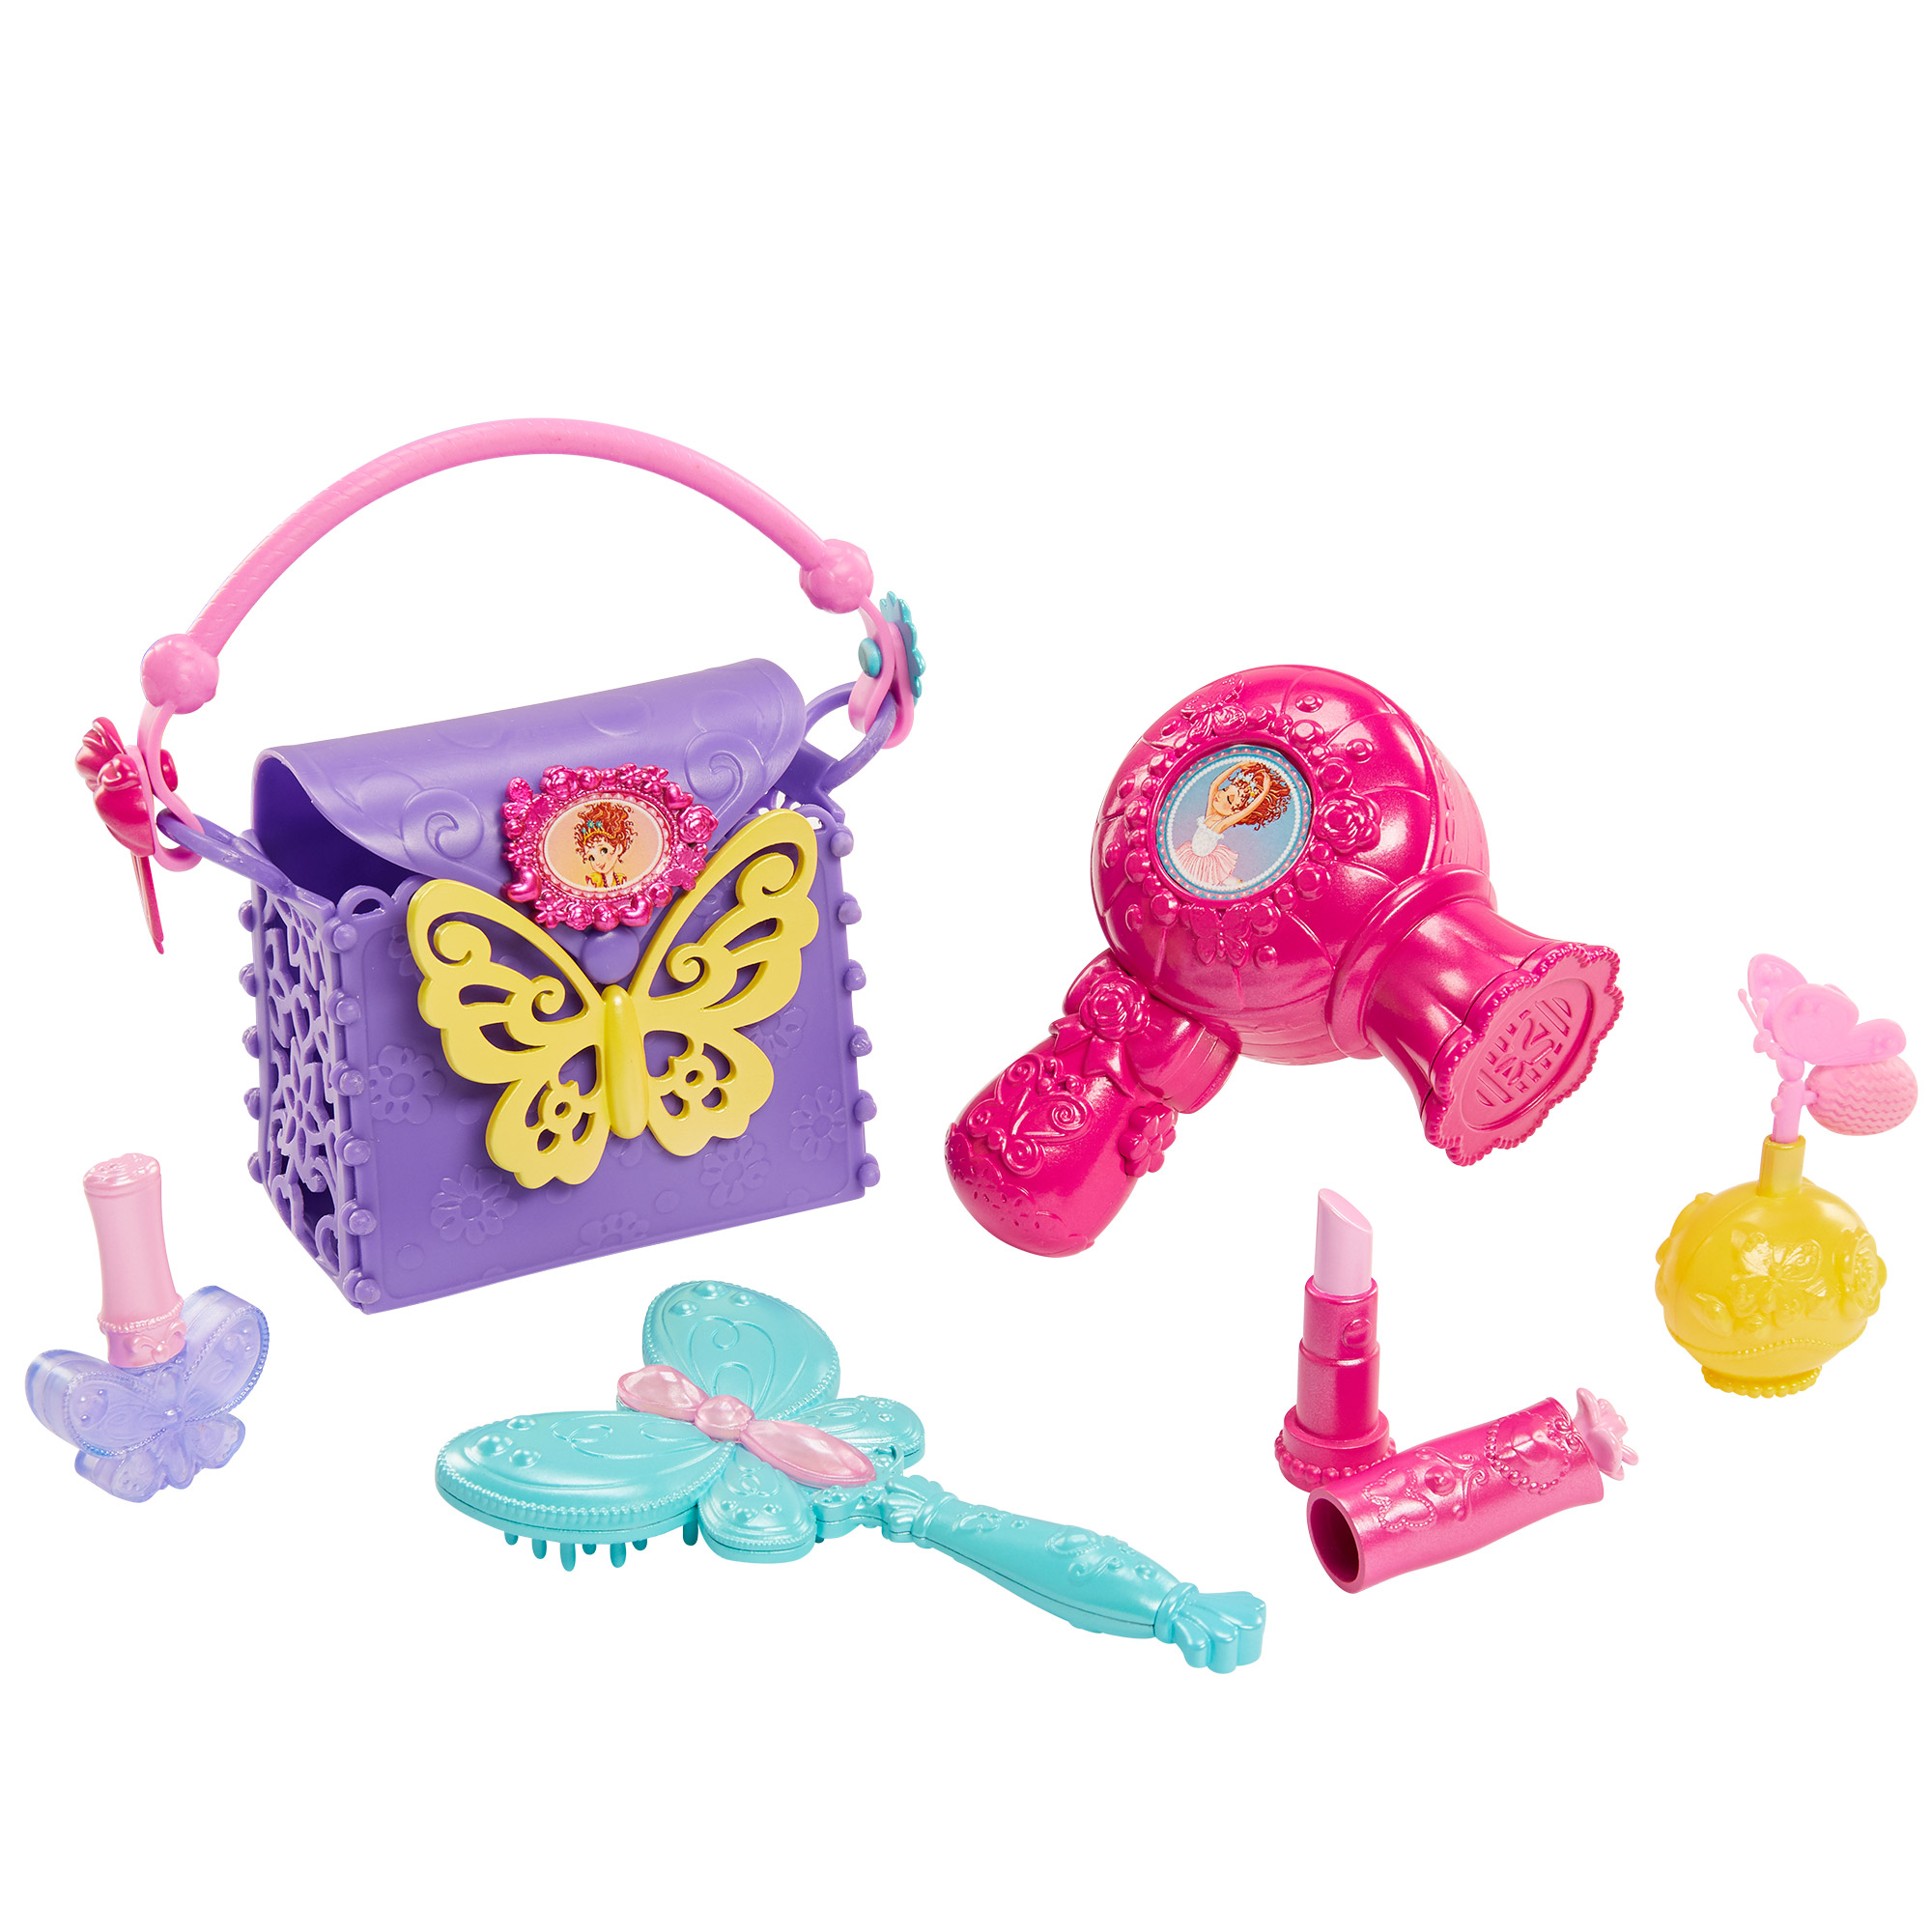 Fancy Nancy Fantastique Vanity Set Disney